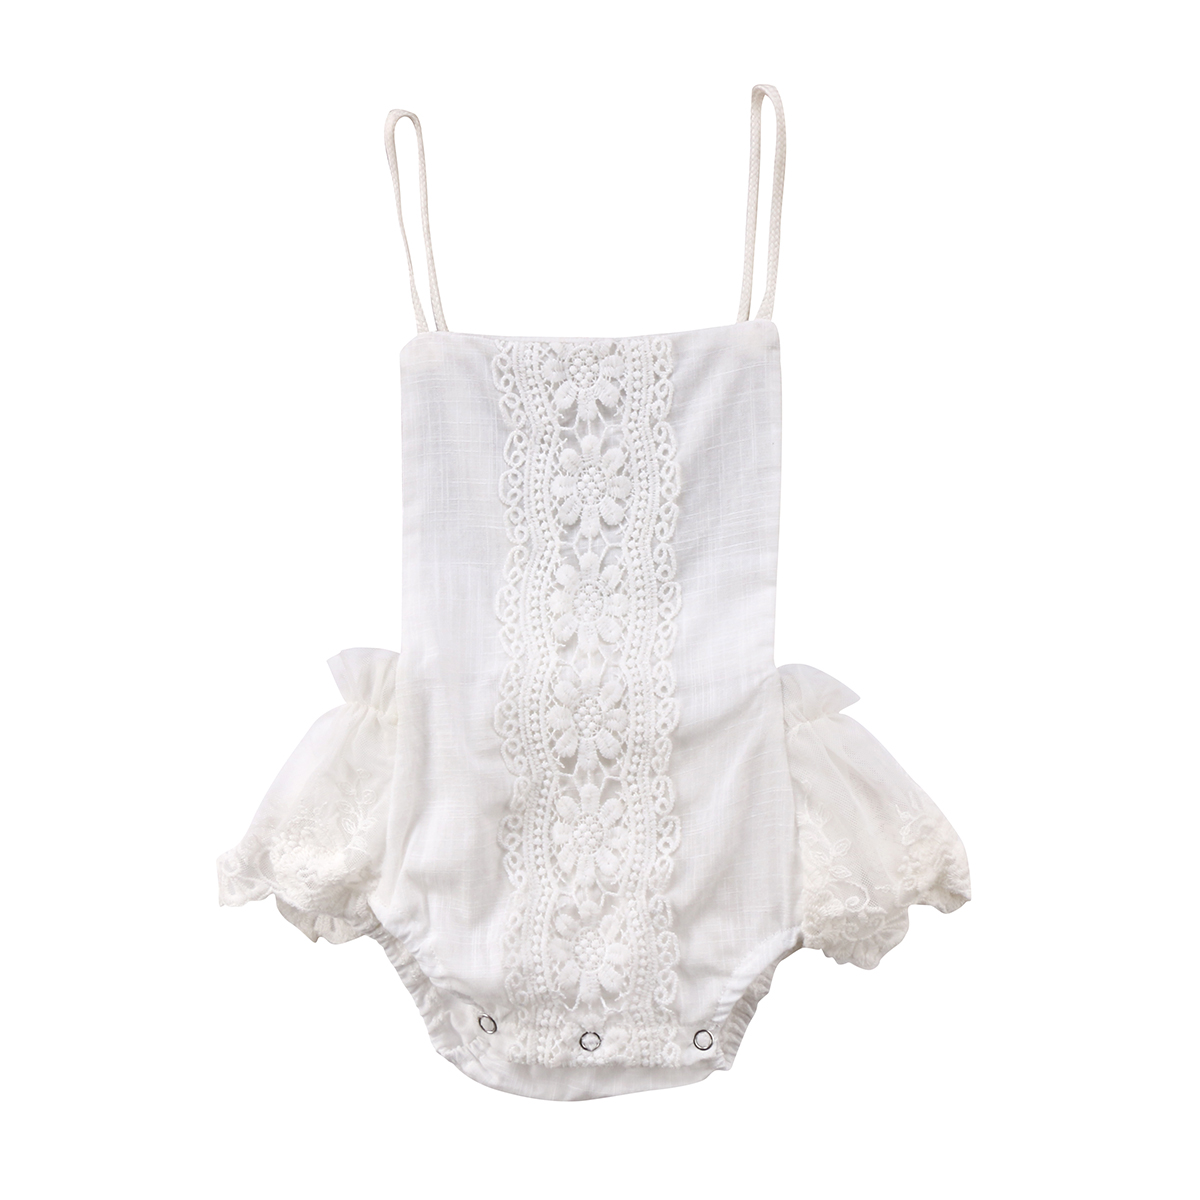 Newborn Baby Girl Clothes Summer Lace Floral Romper Backless Halter Jumpsuit Clothes 0-24M